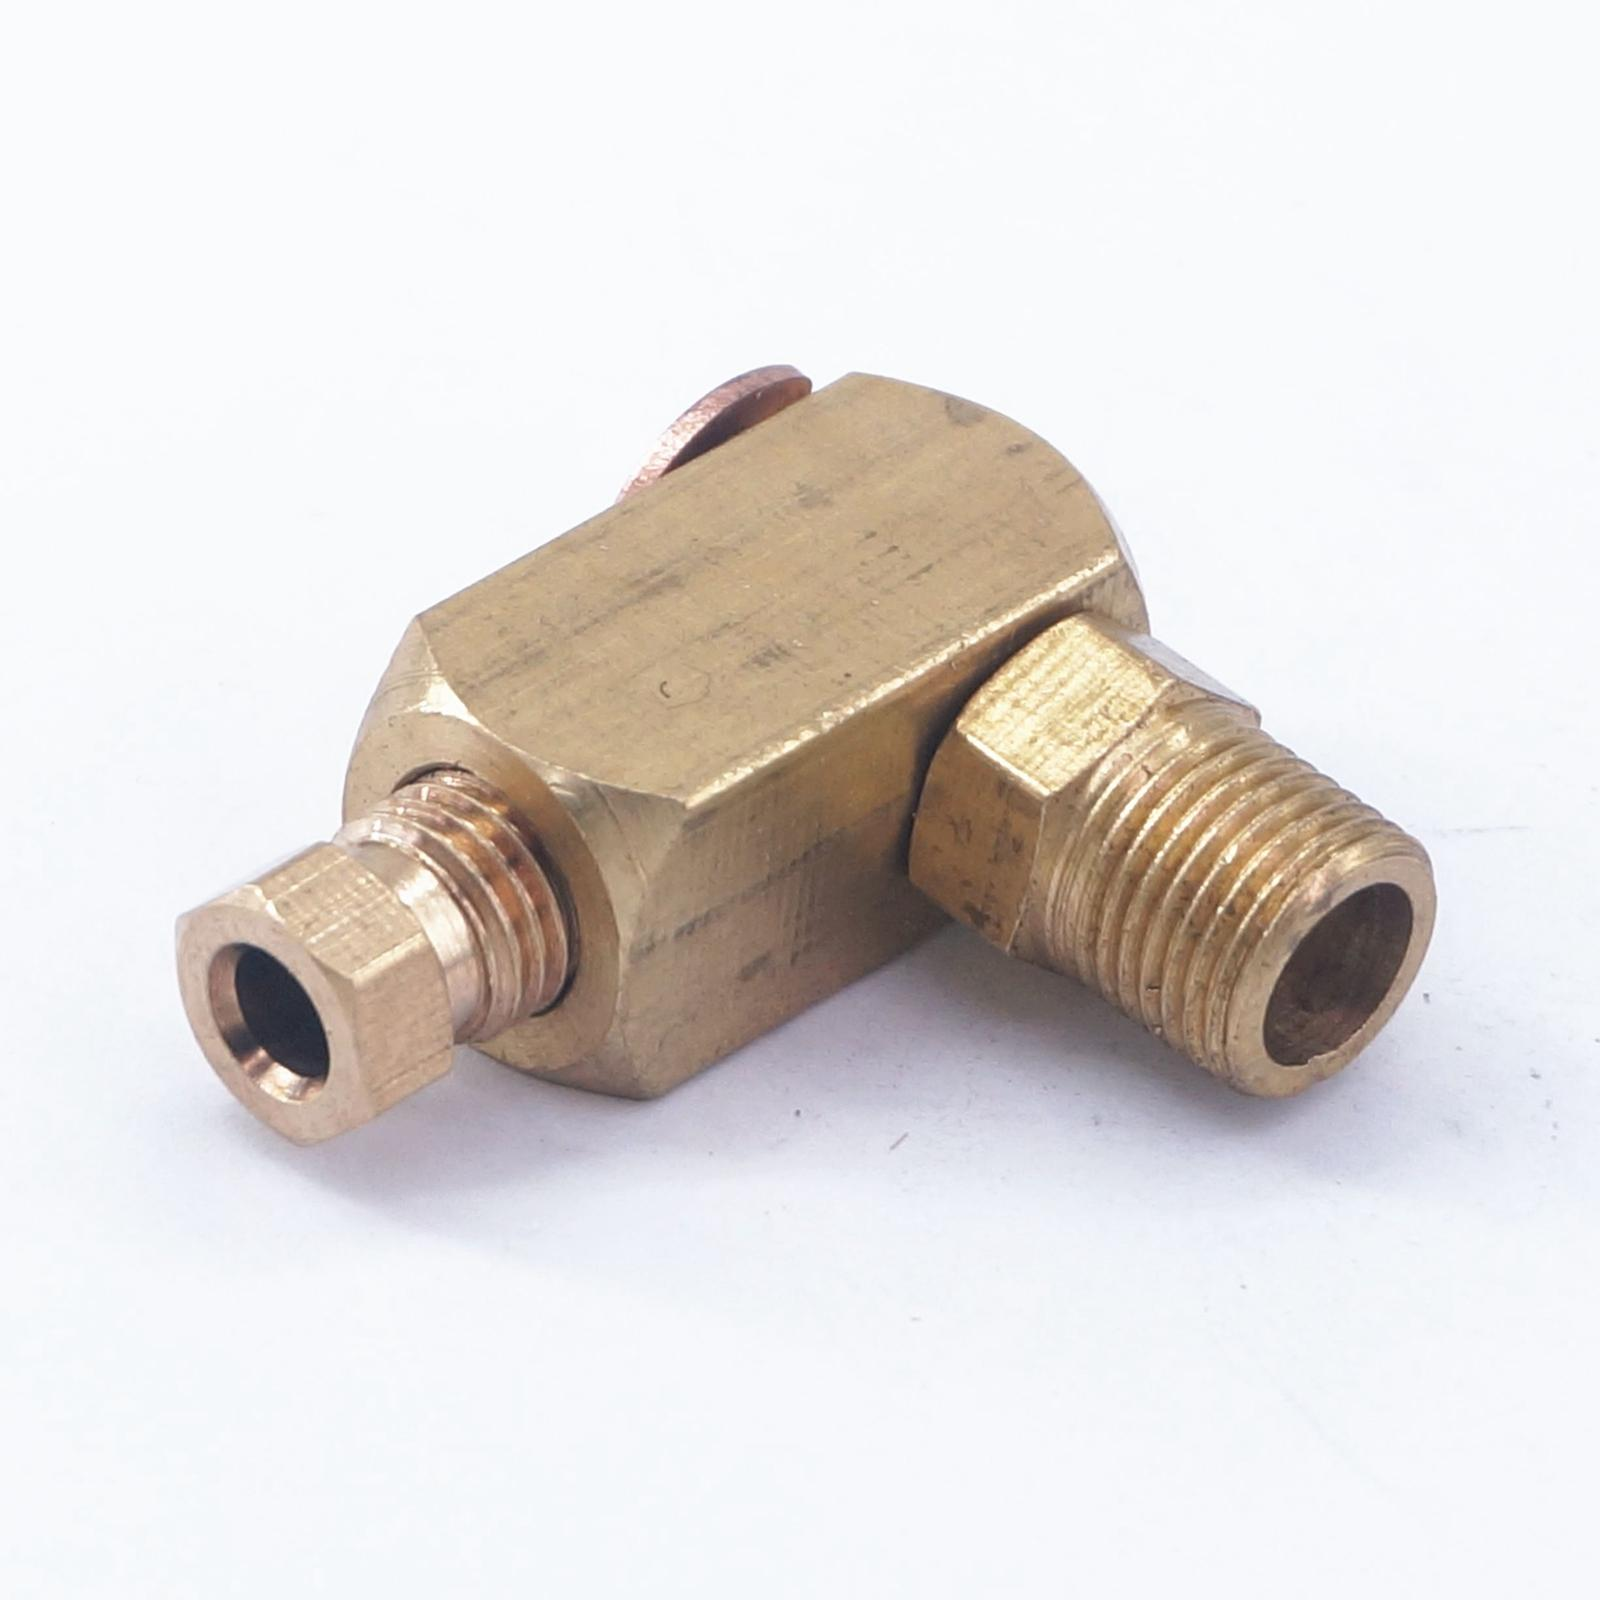 BSP Male 4-8mm OD Tube Brass Connector Fitting Machine Oil Filter Canister 5